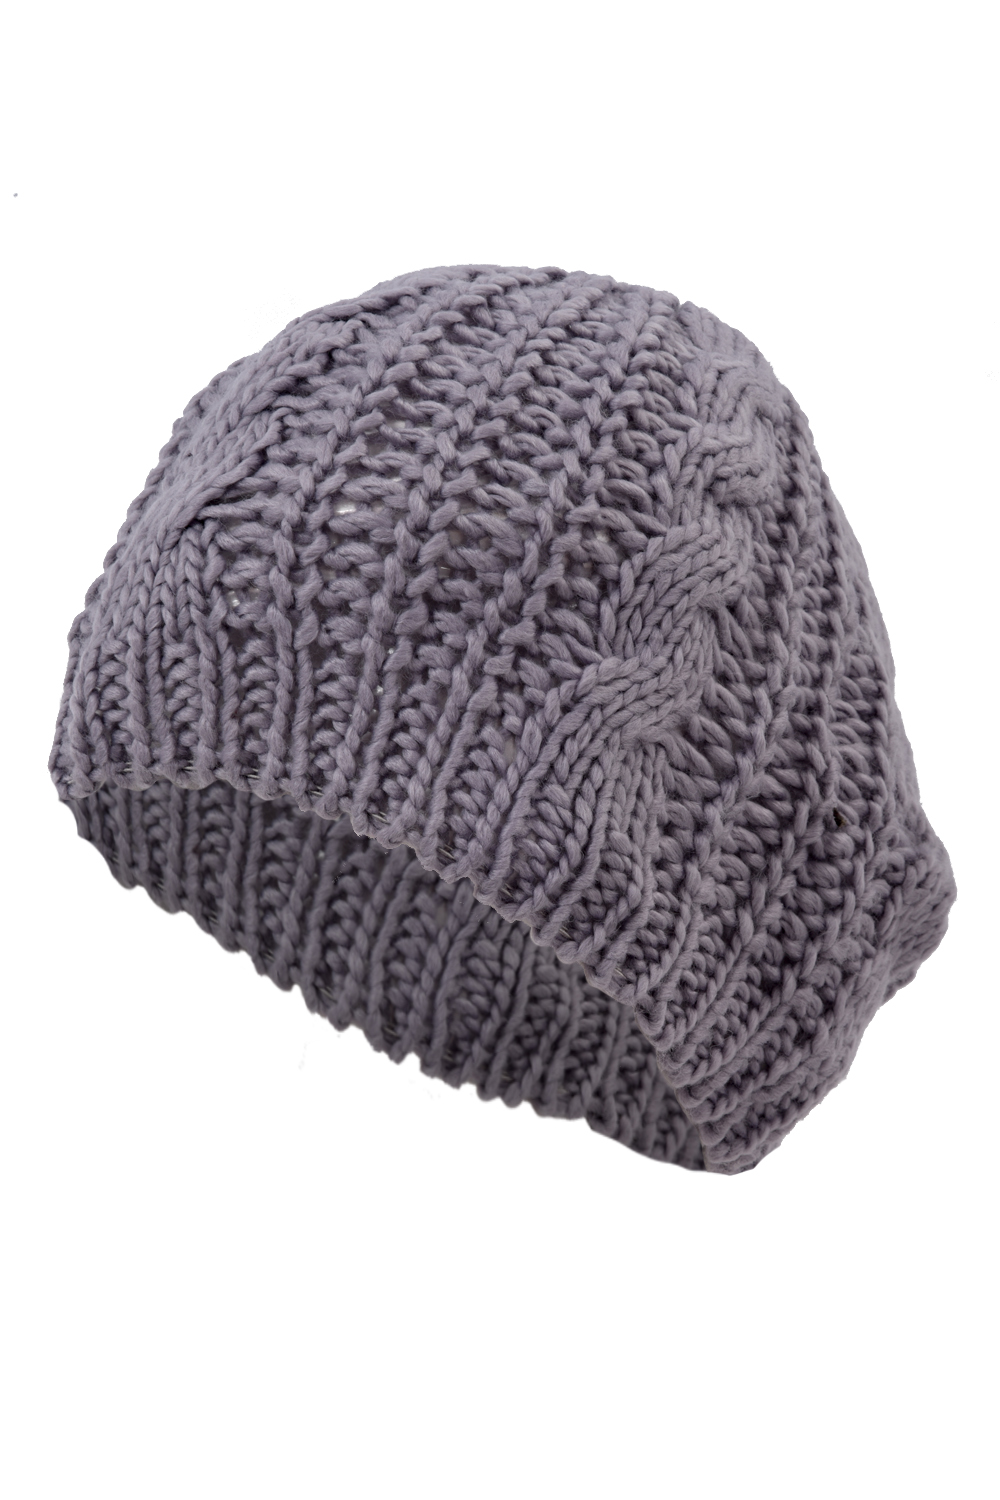 Braided Baggy Beanie Crochet Knitting Warm Winter Wool Hat Cap for Women hot braided baggy beanie crochet knitting warm winter wool hat ski cap for women